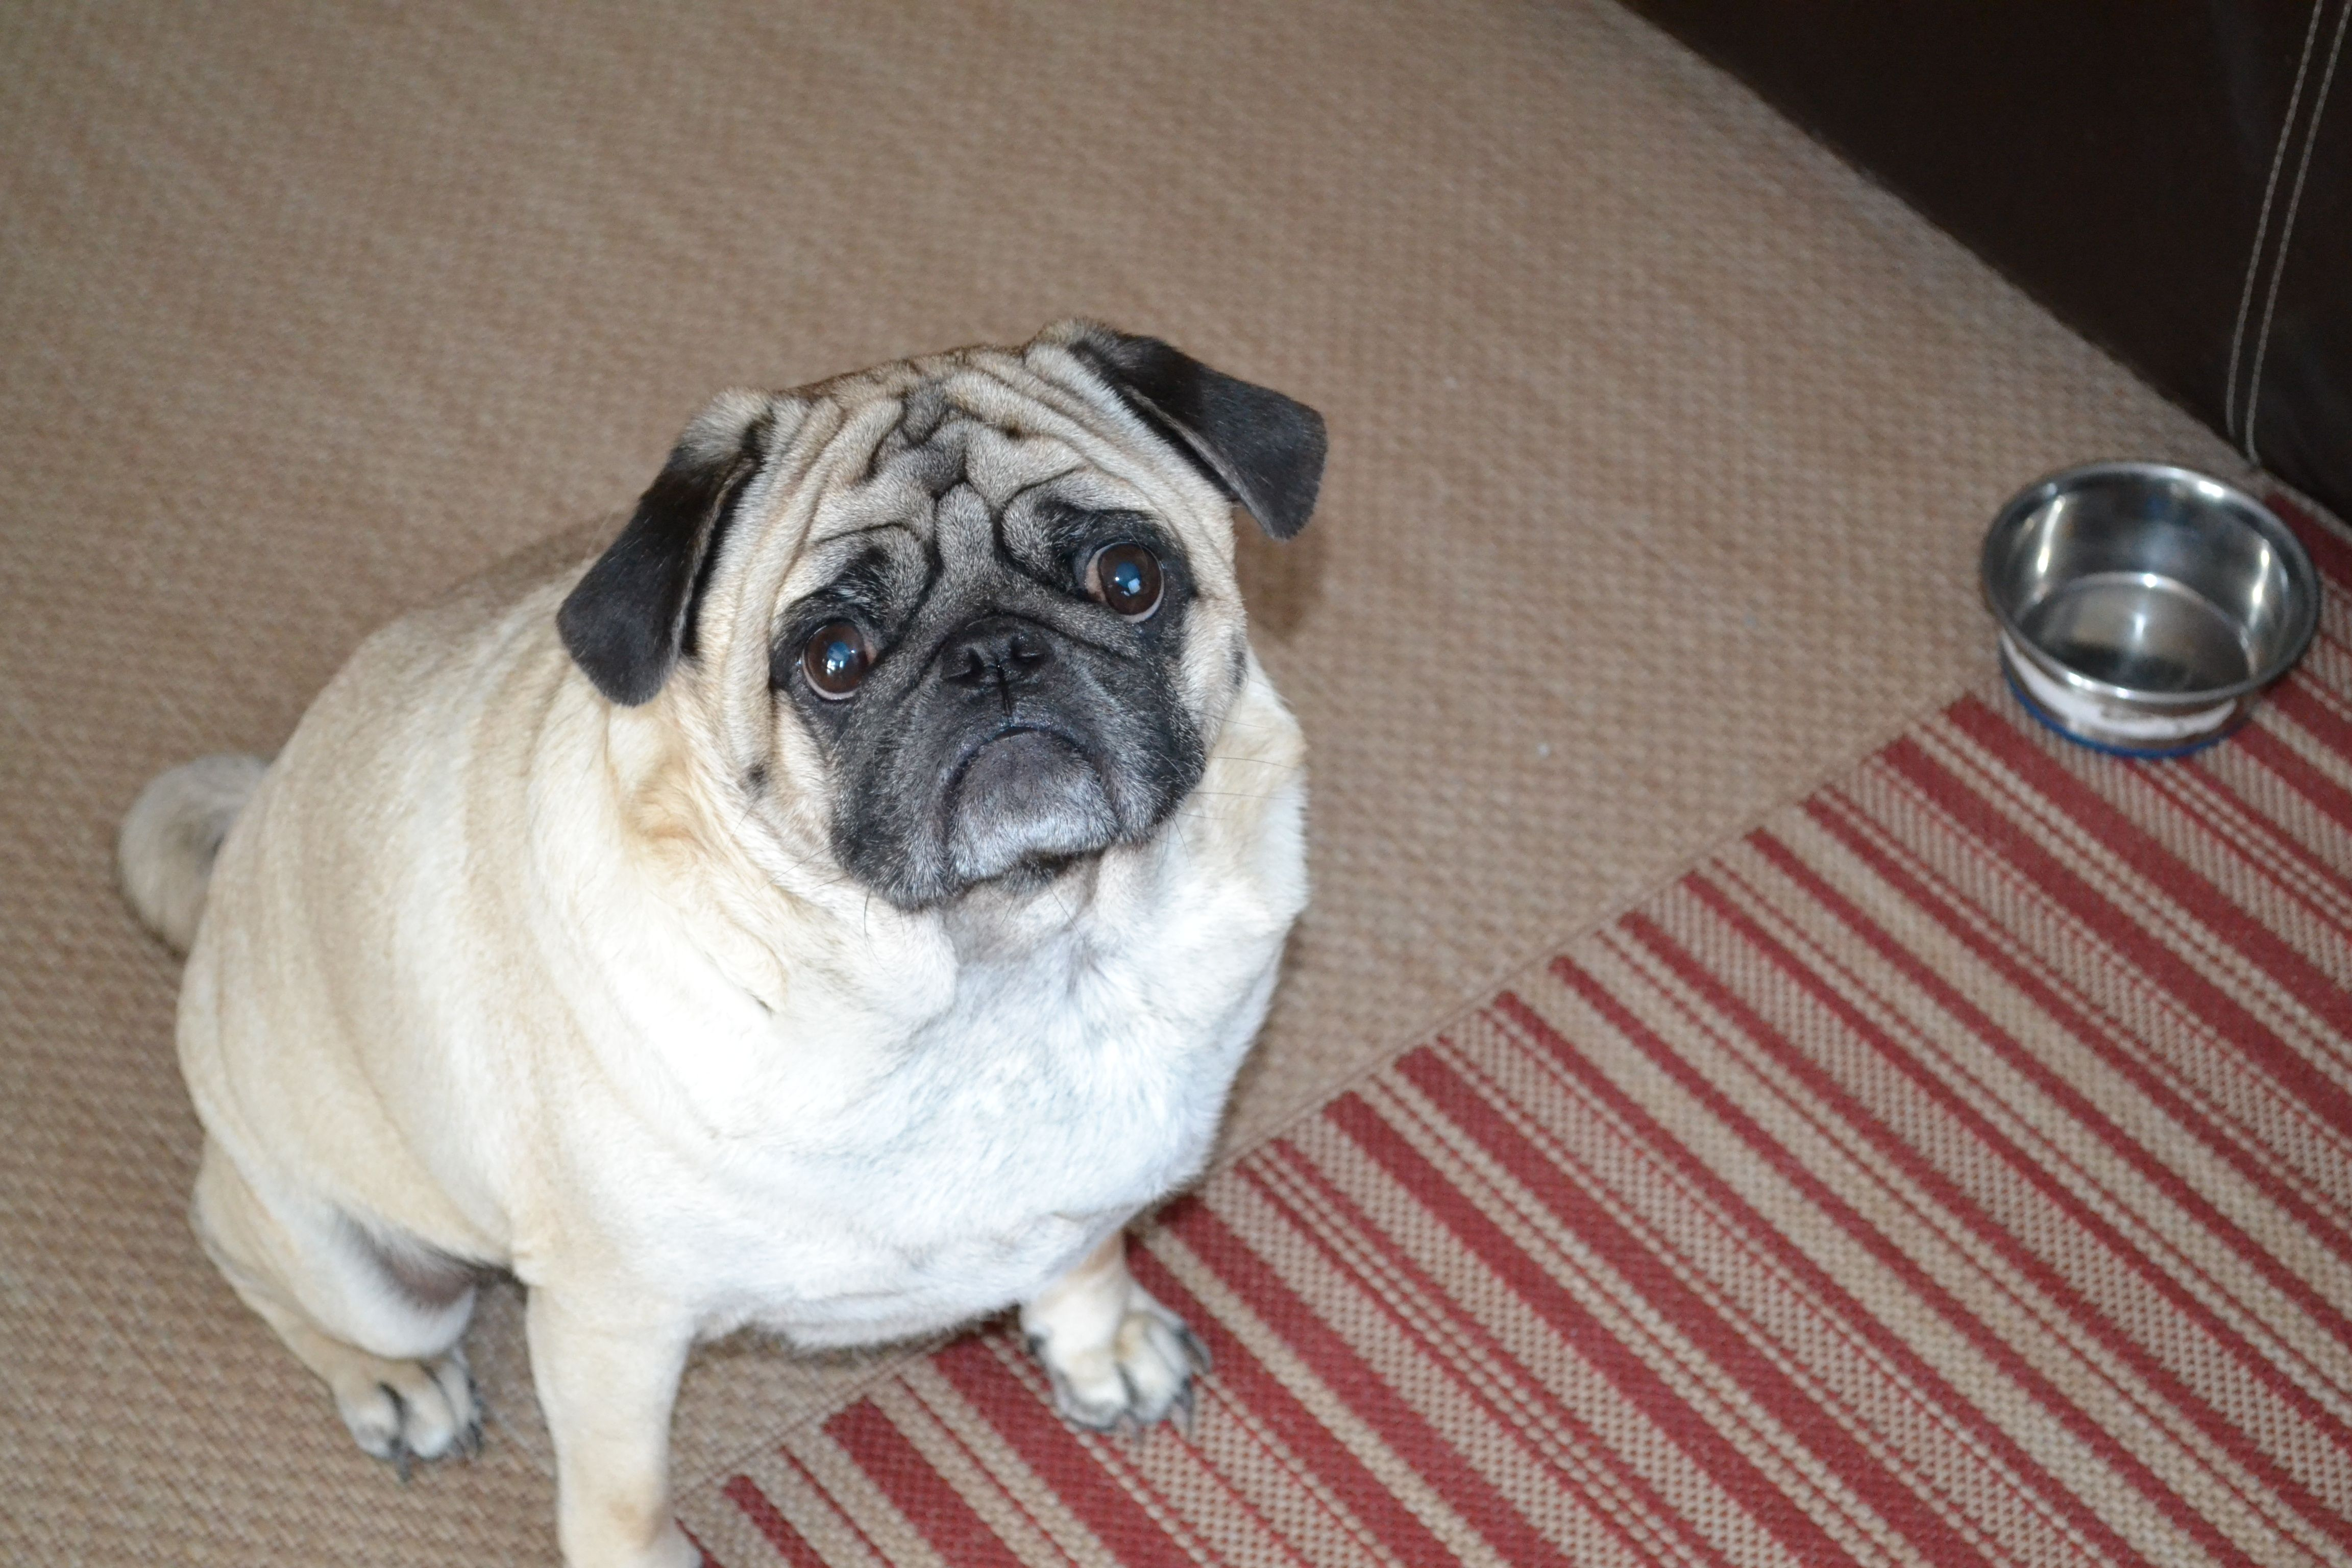 My Little Goku Otherwise Known As Gooey The Pug Pug Love